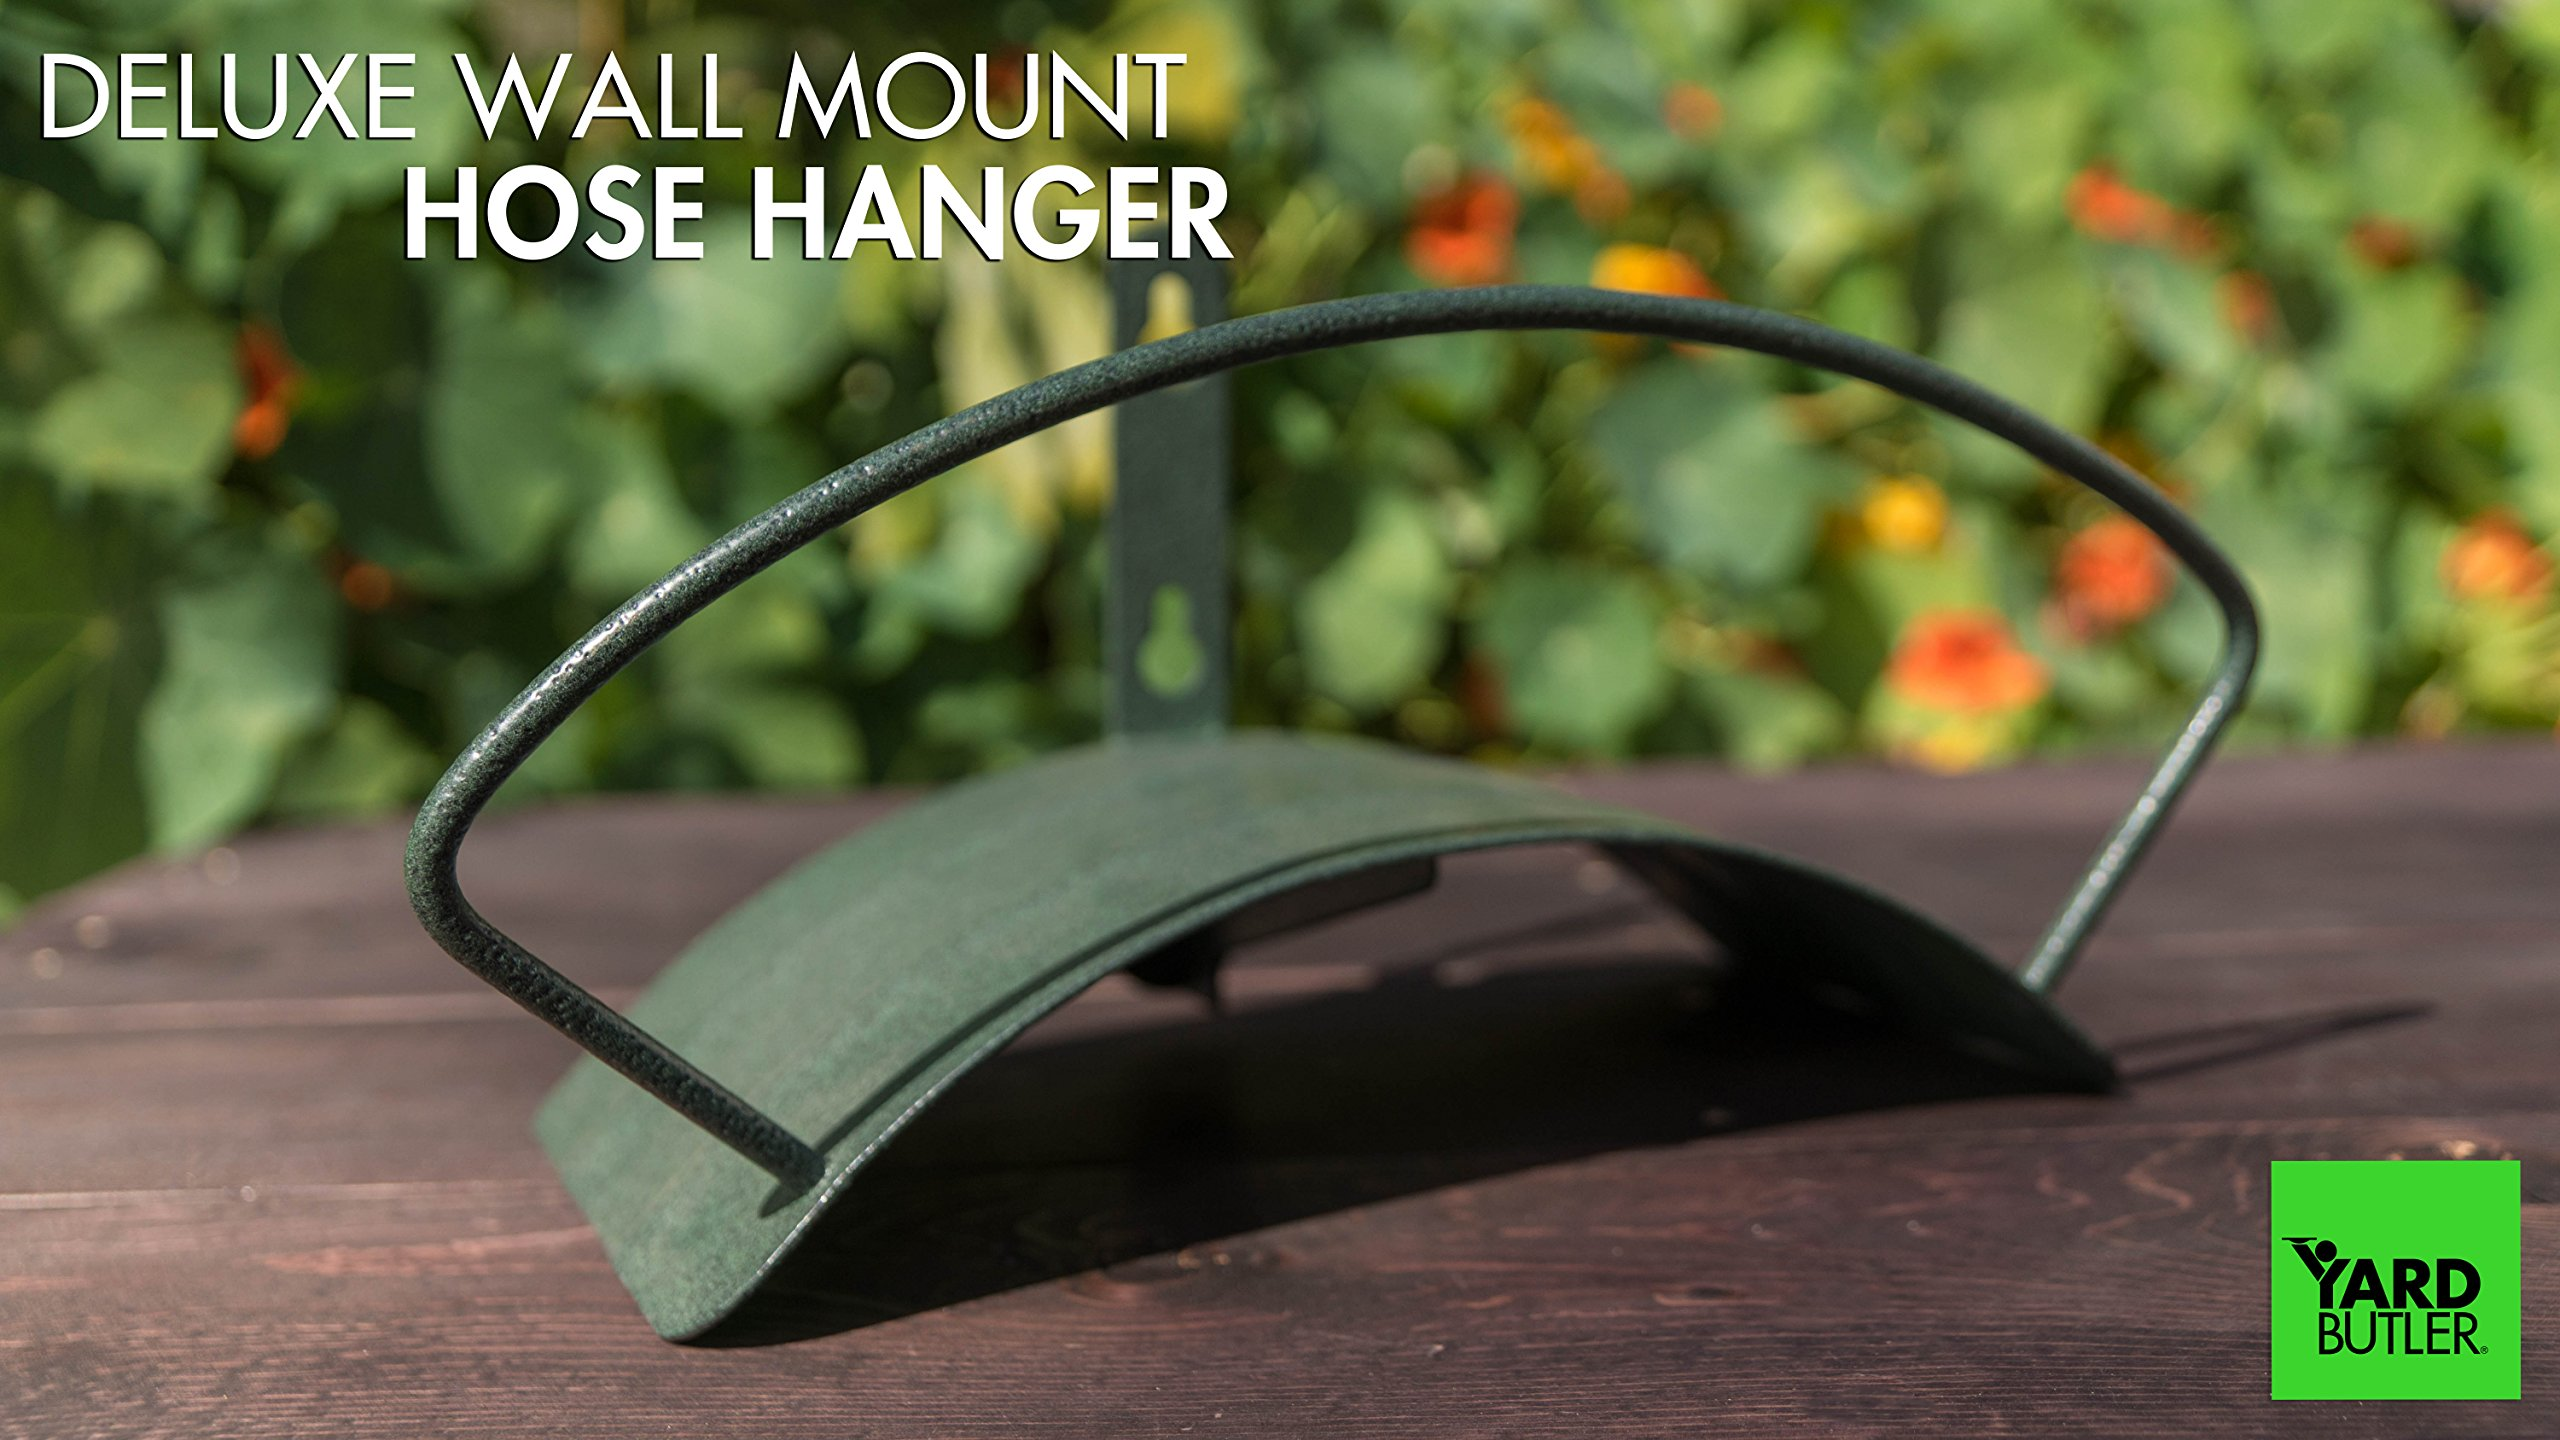 Yard Butler Deluxe Heavy Duty Wall Mount Hose Hanger Easily Holds 100' Of 5/8' Hose Solid Steel Extra Bracing And Patented Design In and DECORATIVE DESIGNS IHCWM-1 Textured Forest Green by Yard Butler (Image #6)